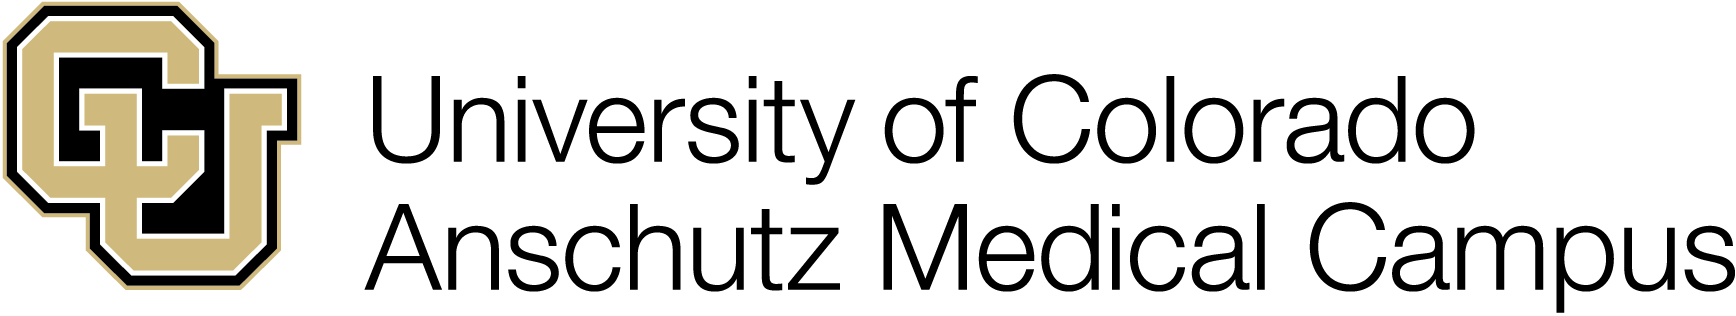 university-colorado-anschutz